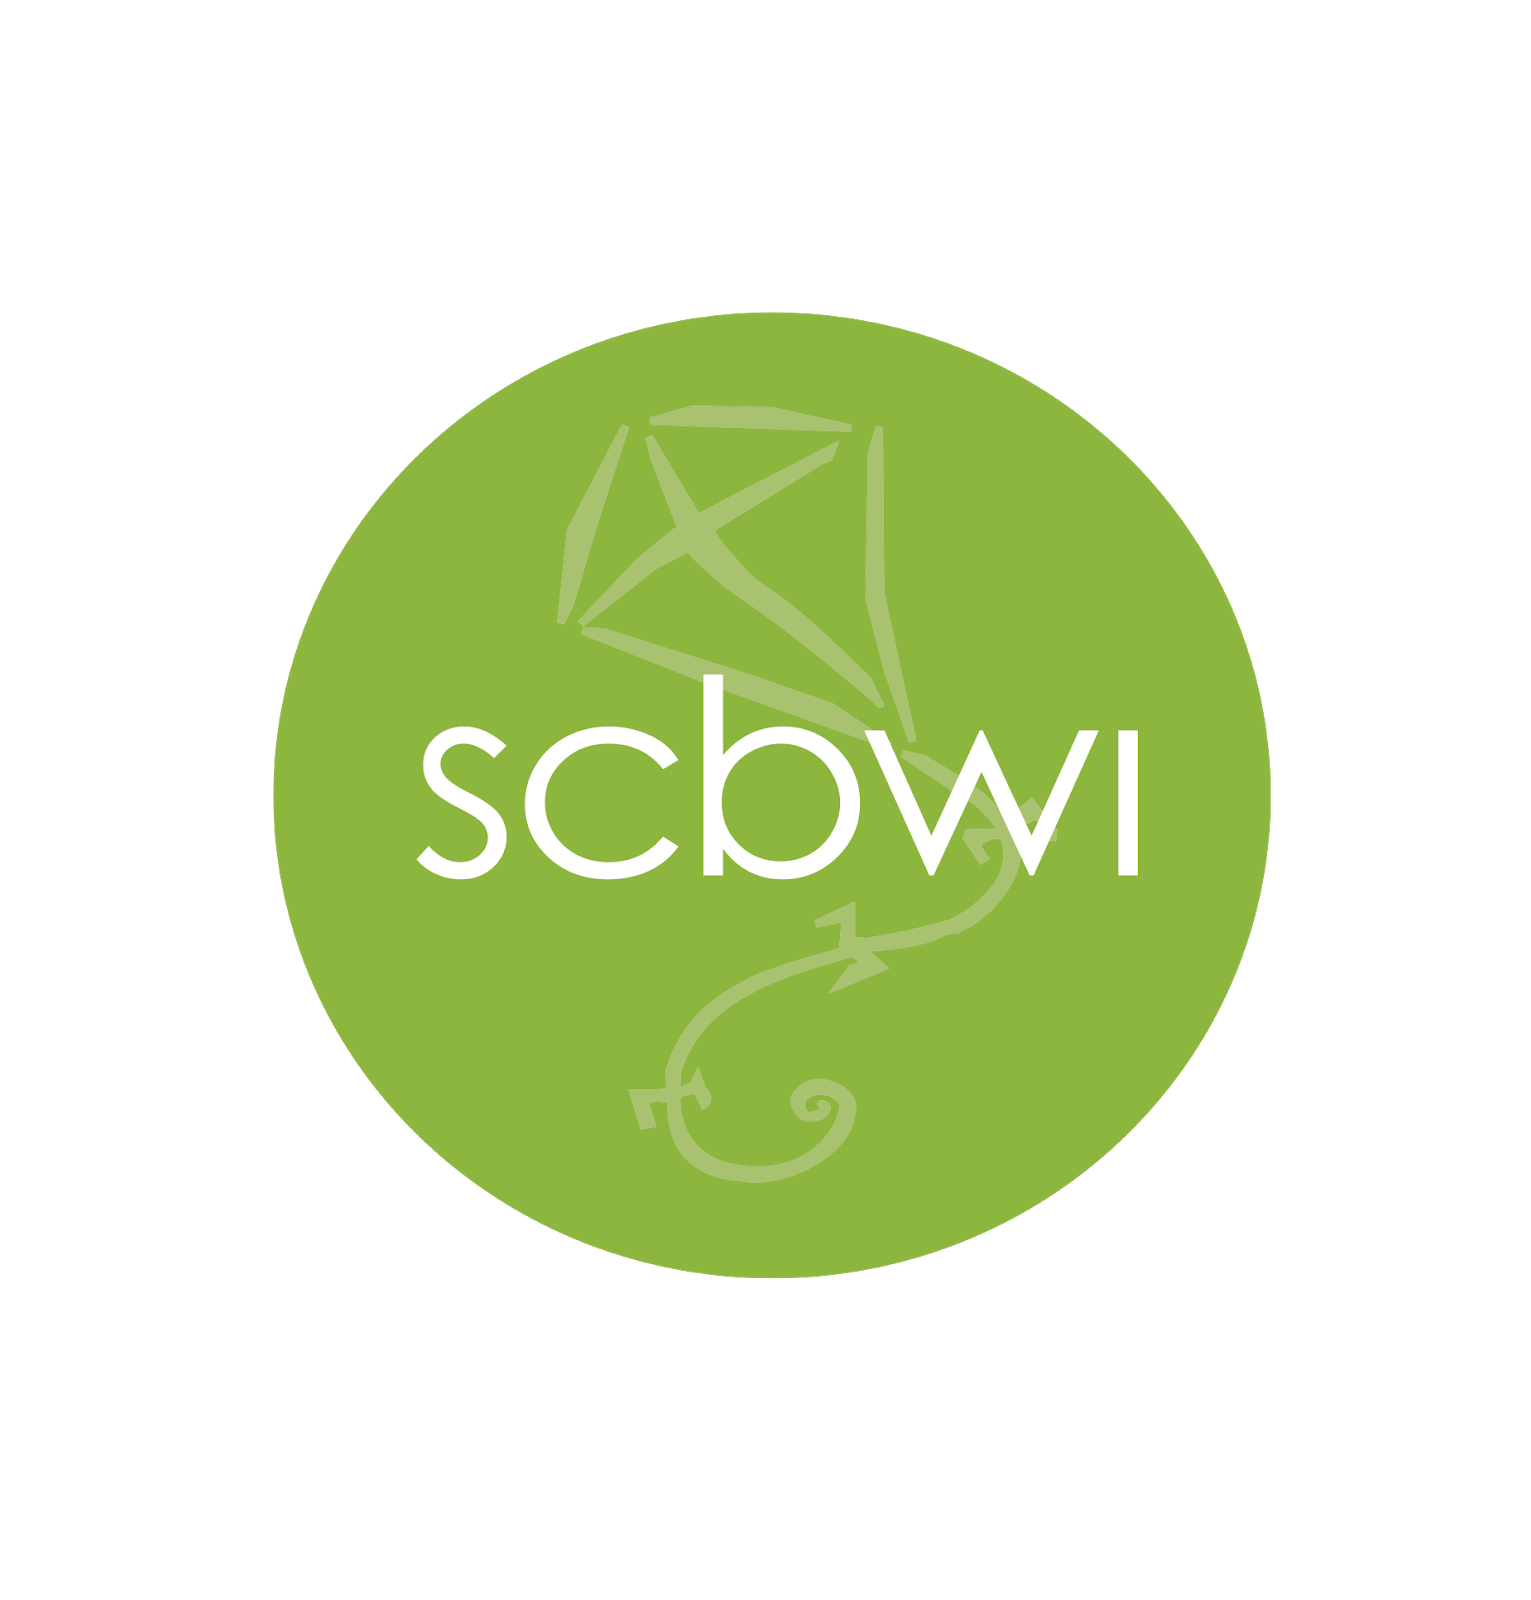 scbwi homepage